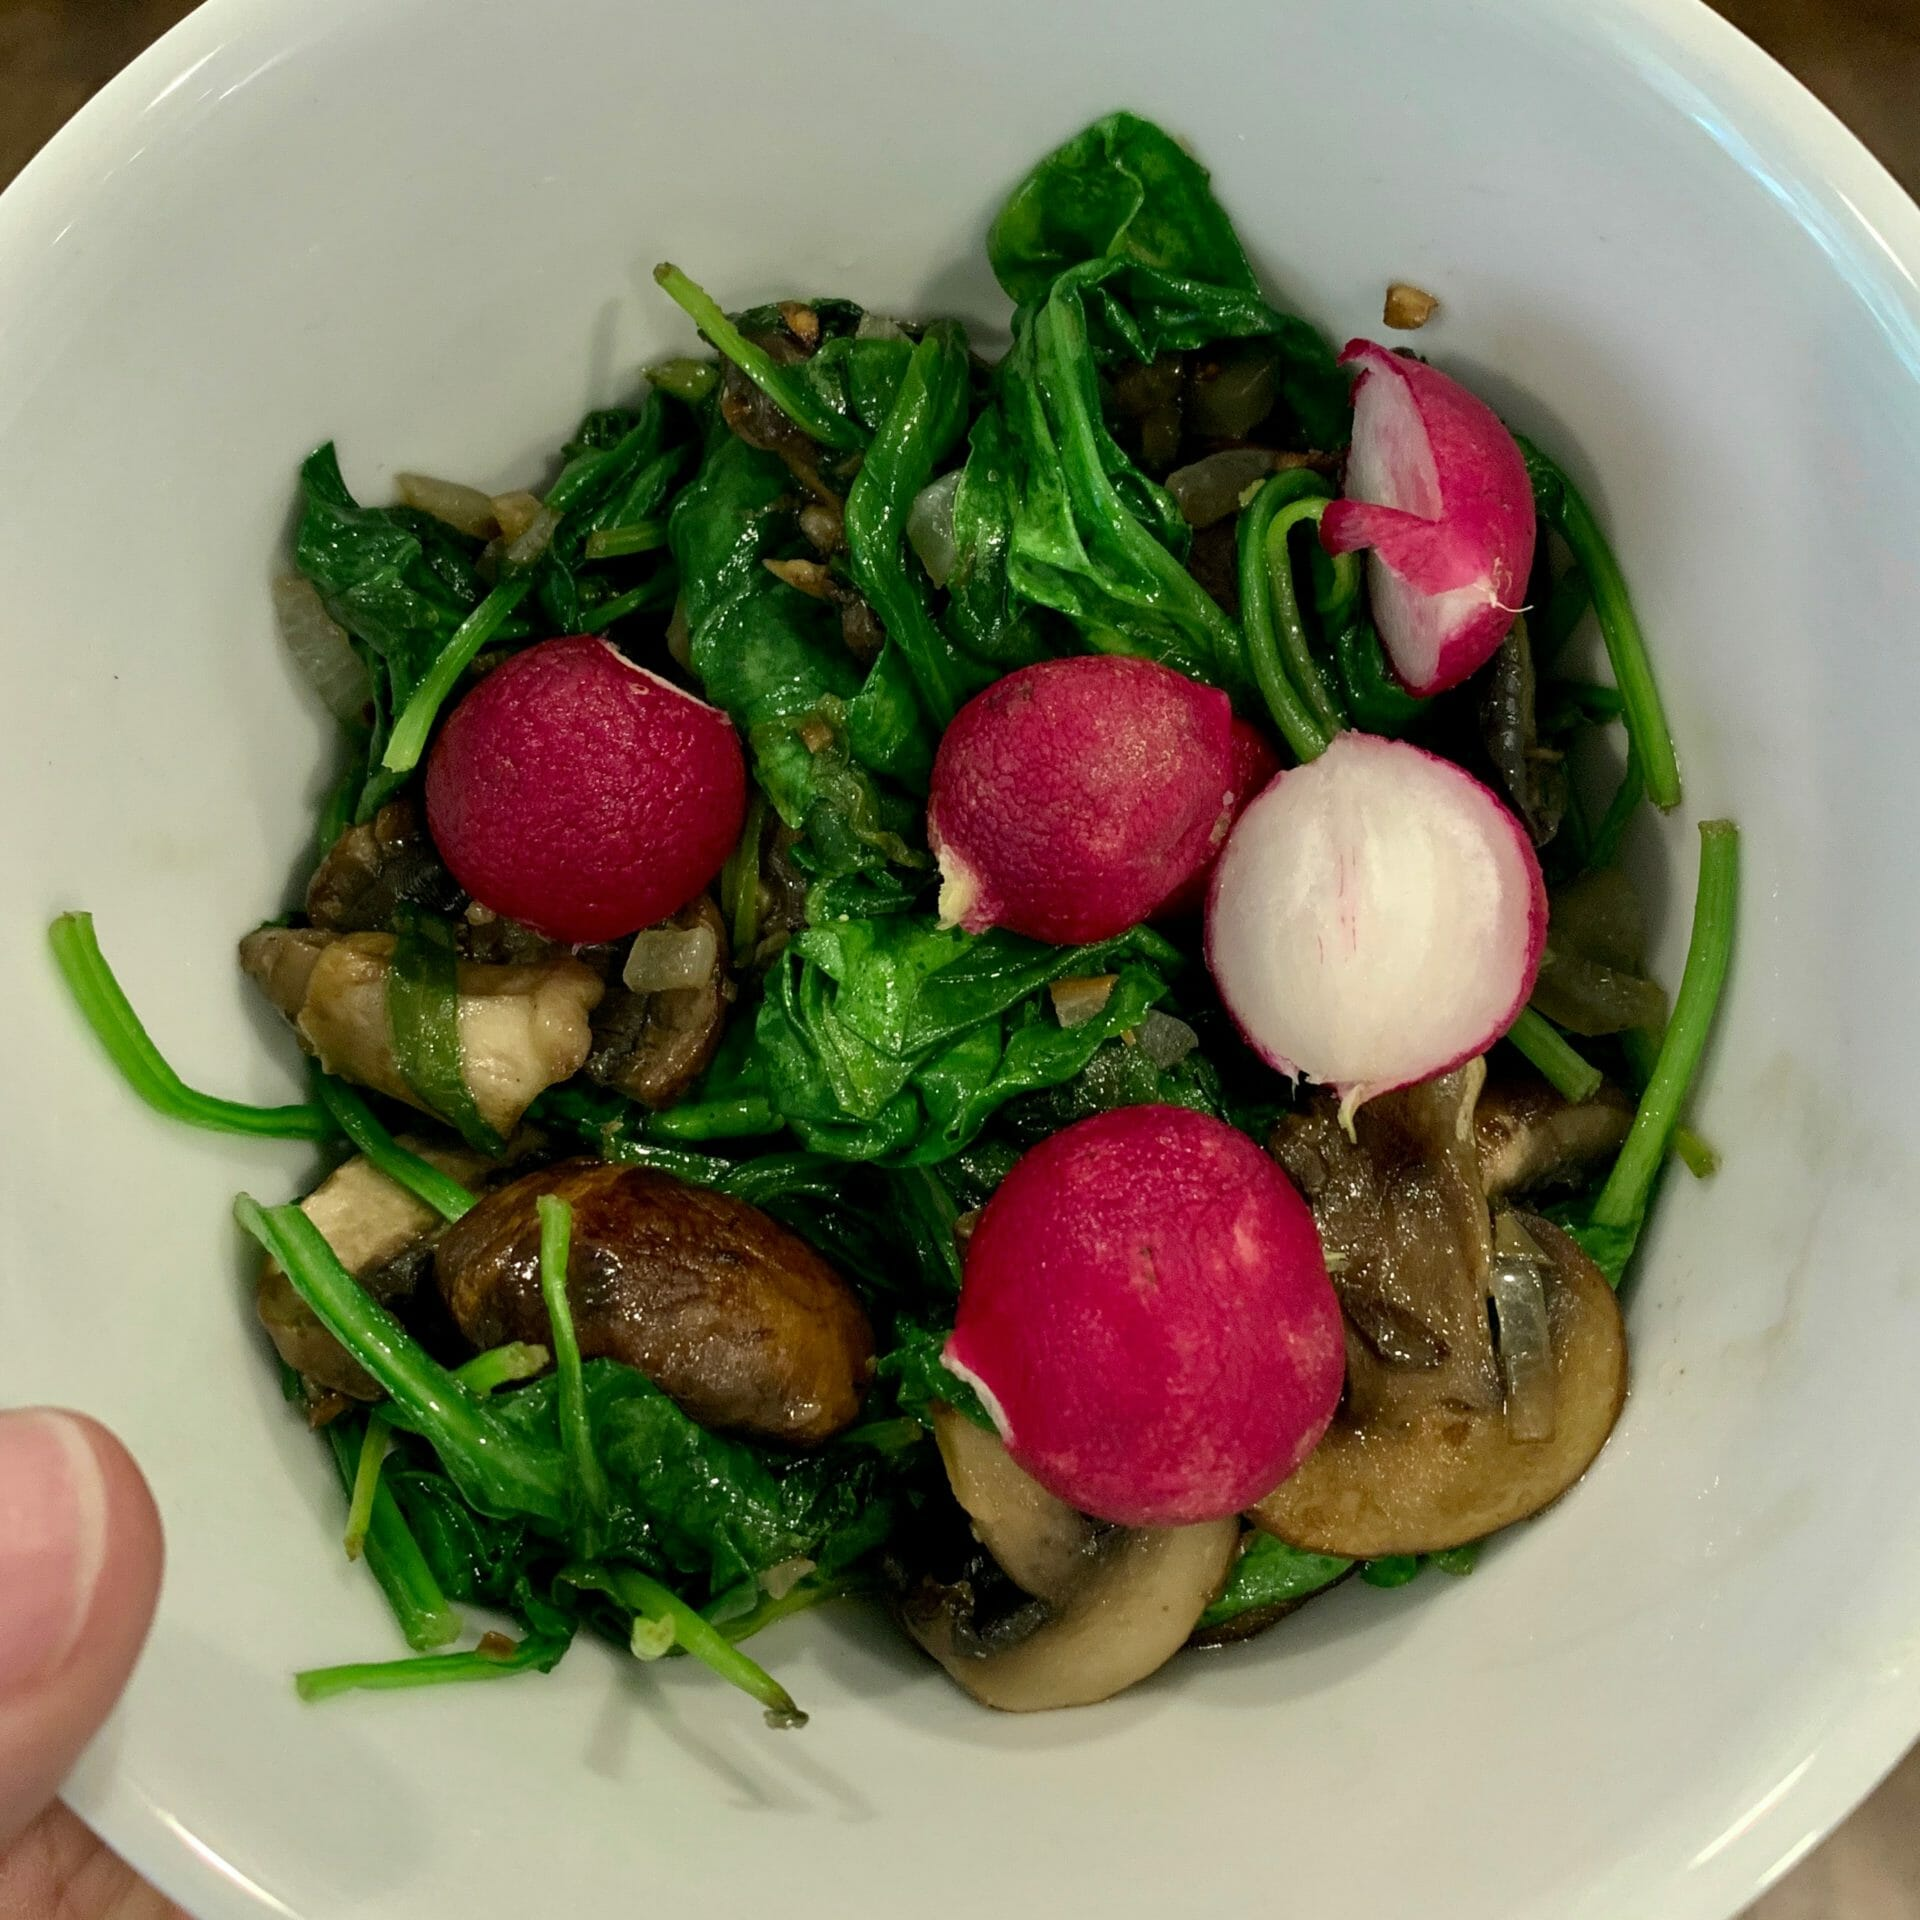 Sautéed spinach and mushrooms with radishes